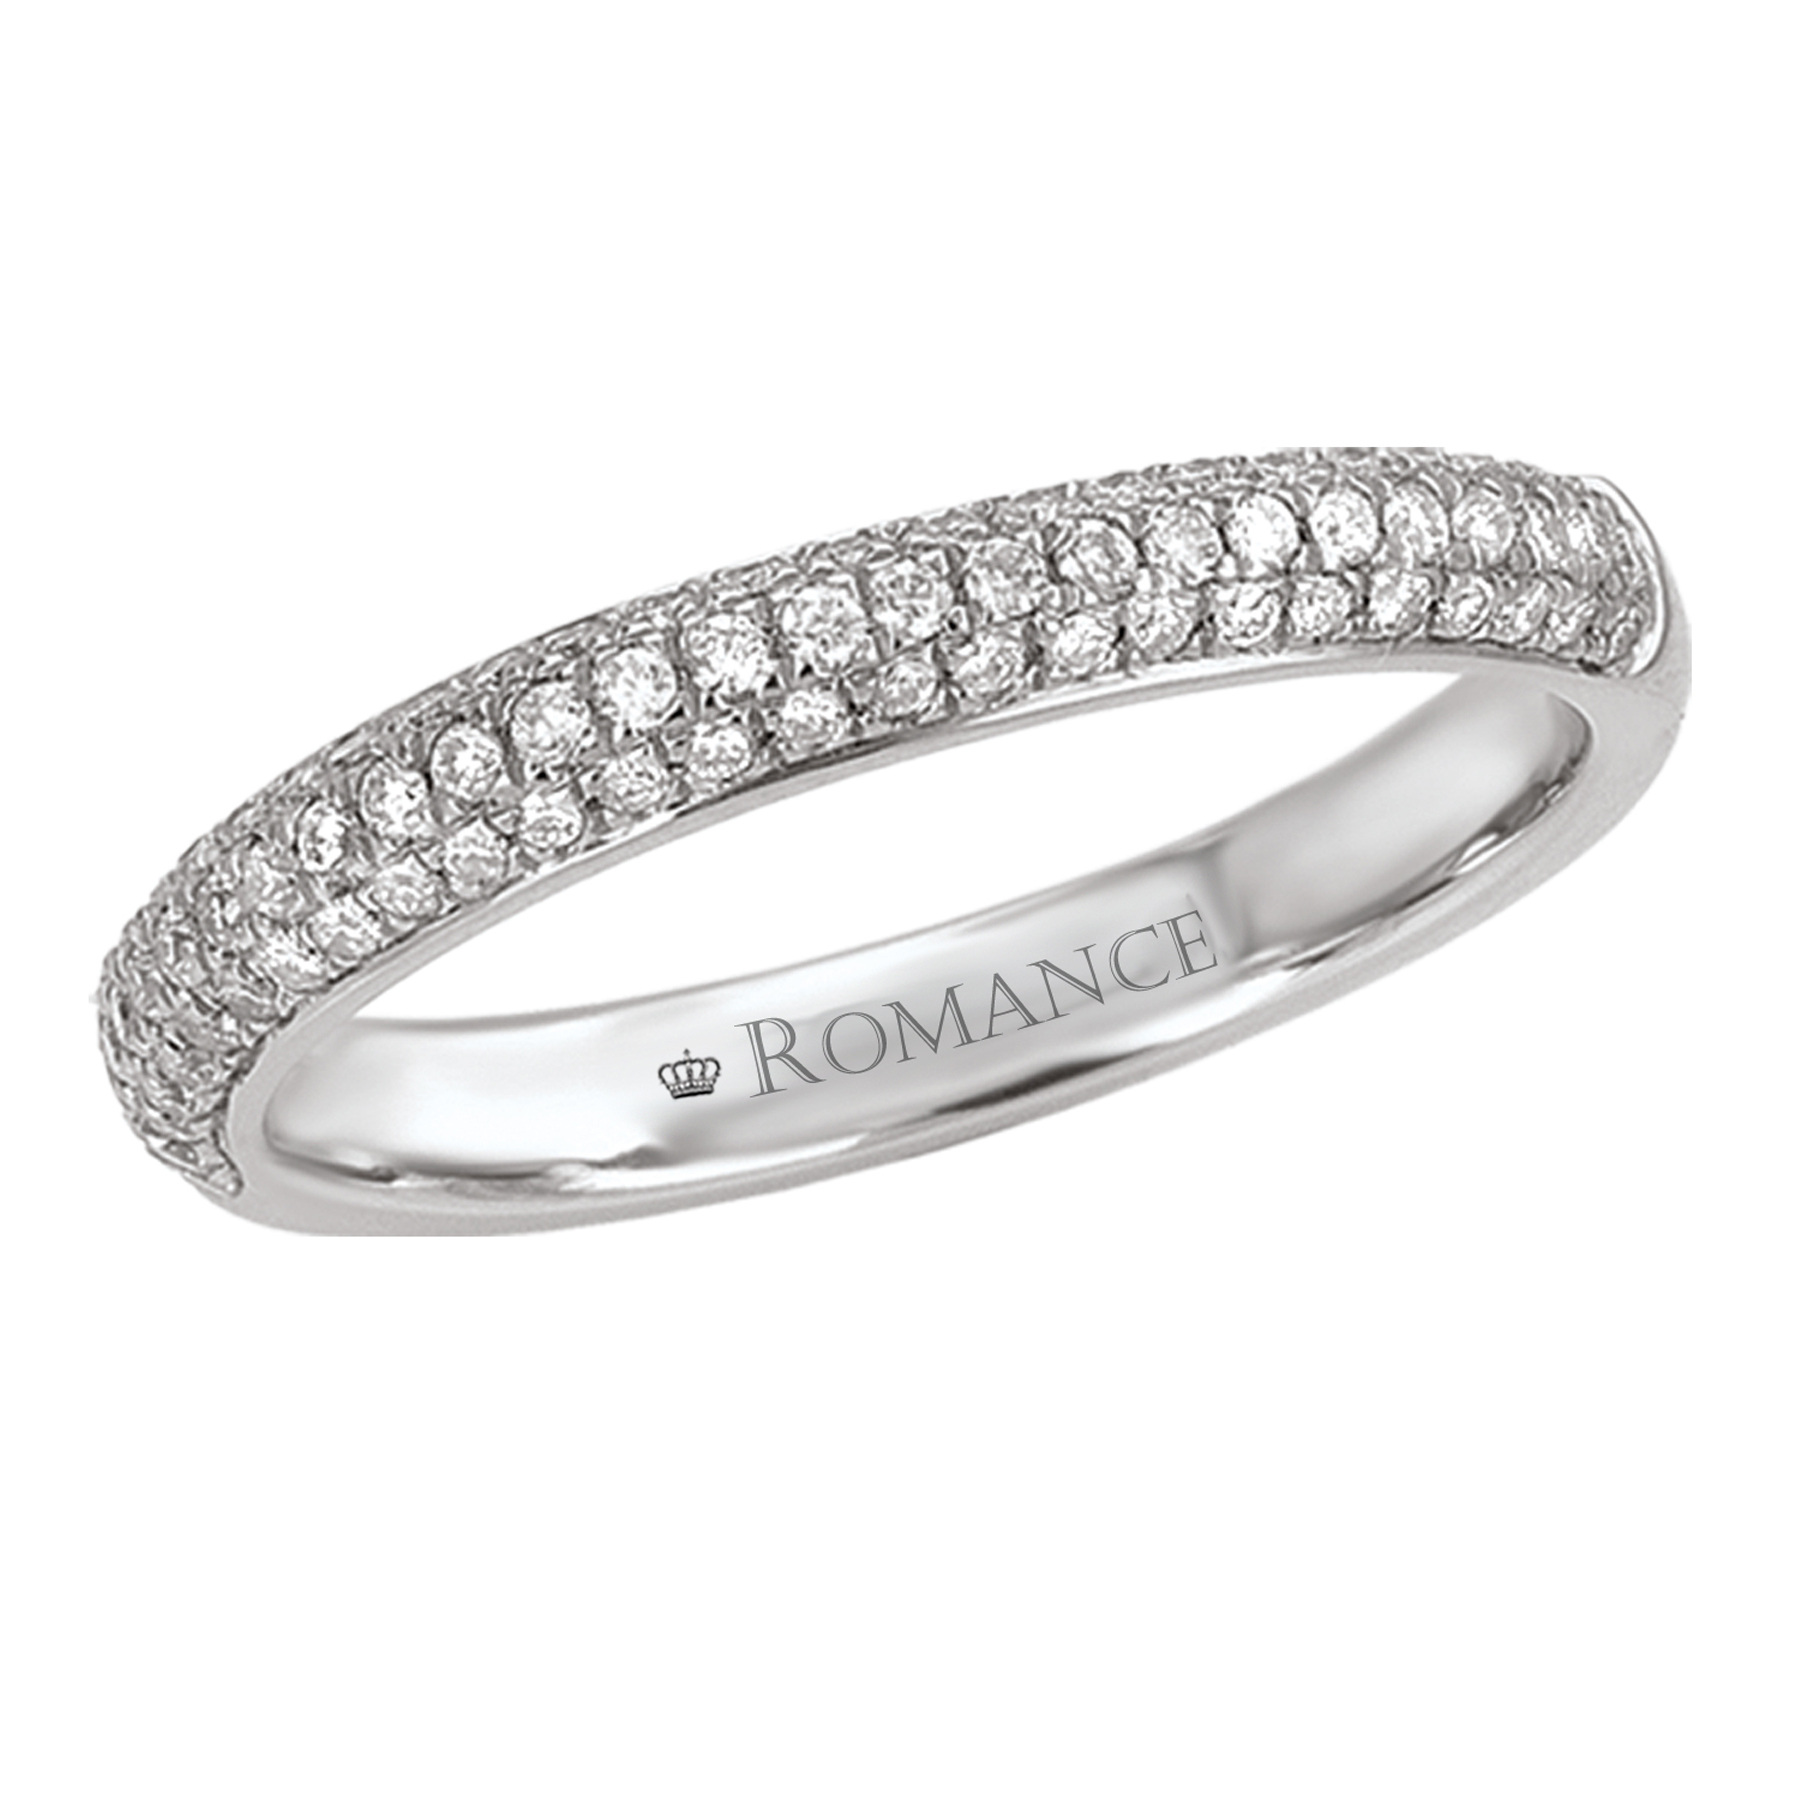 Romance Wedding Bands 118007-W product image